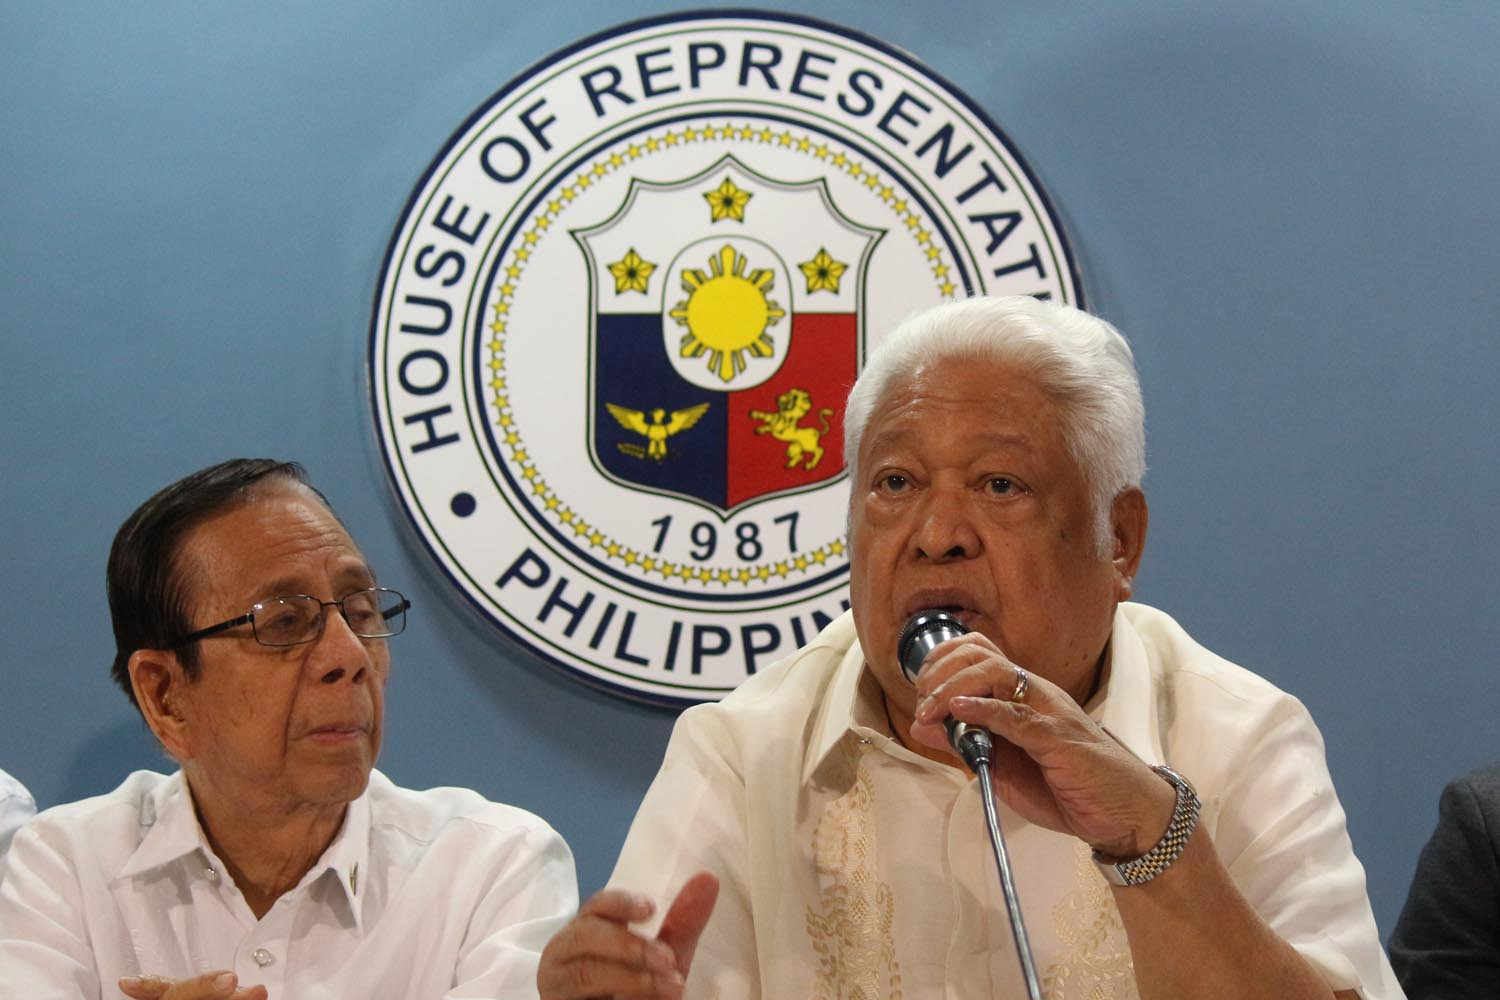 rh bill divorce Revival of proposed divorce bill dismays cbcp by admin will it help turn the philippines into a first world country if we have divorce, rh bill and same sex.